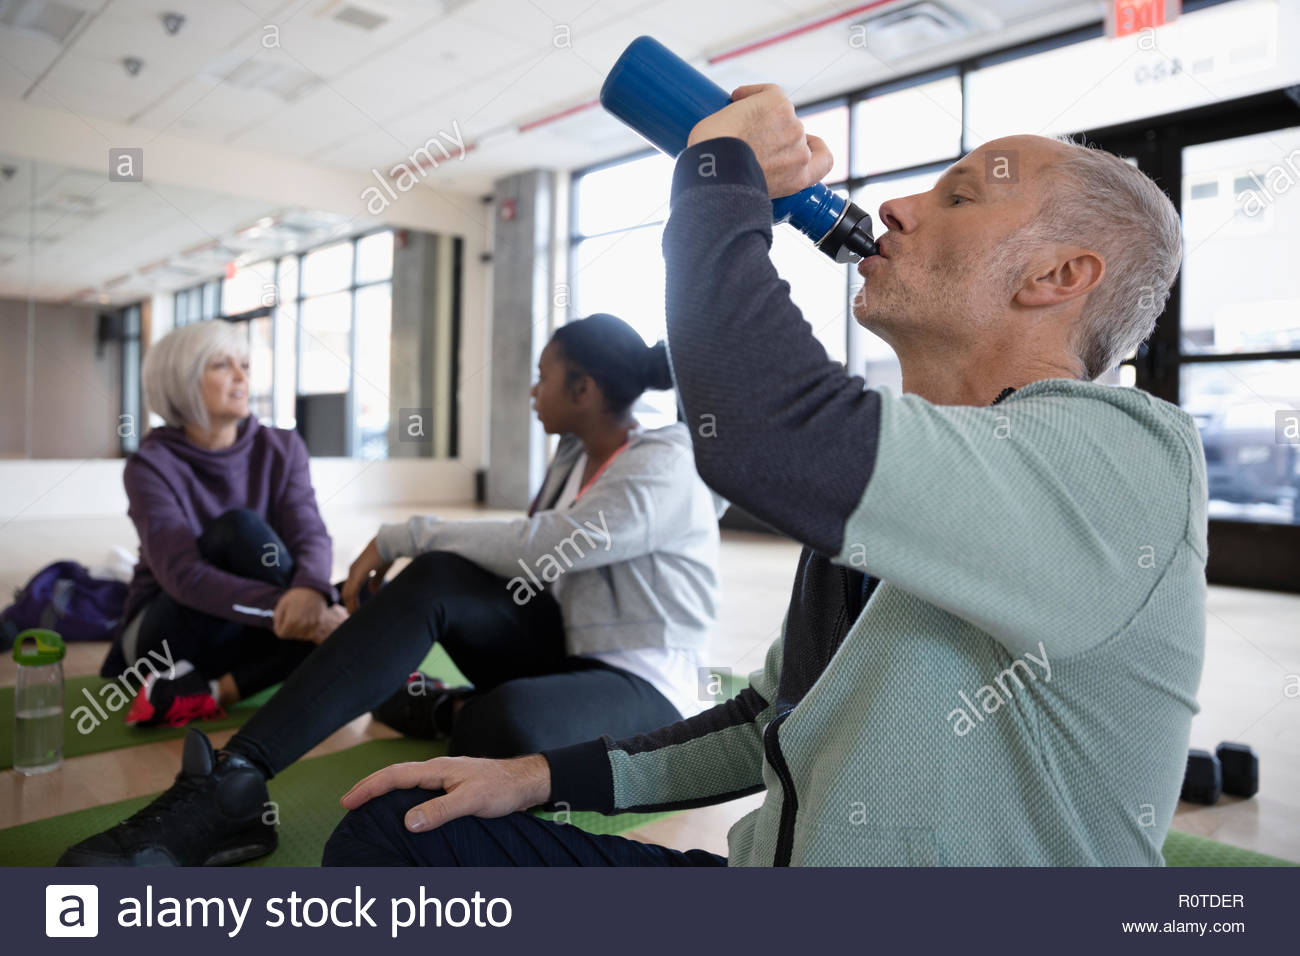 Man Trinkwasser in Fitness Studio Stockbild